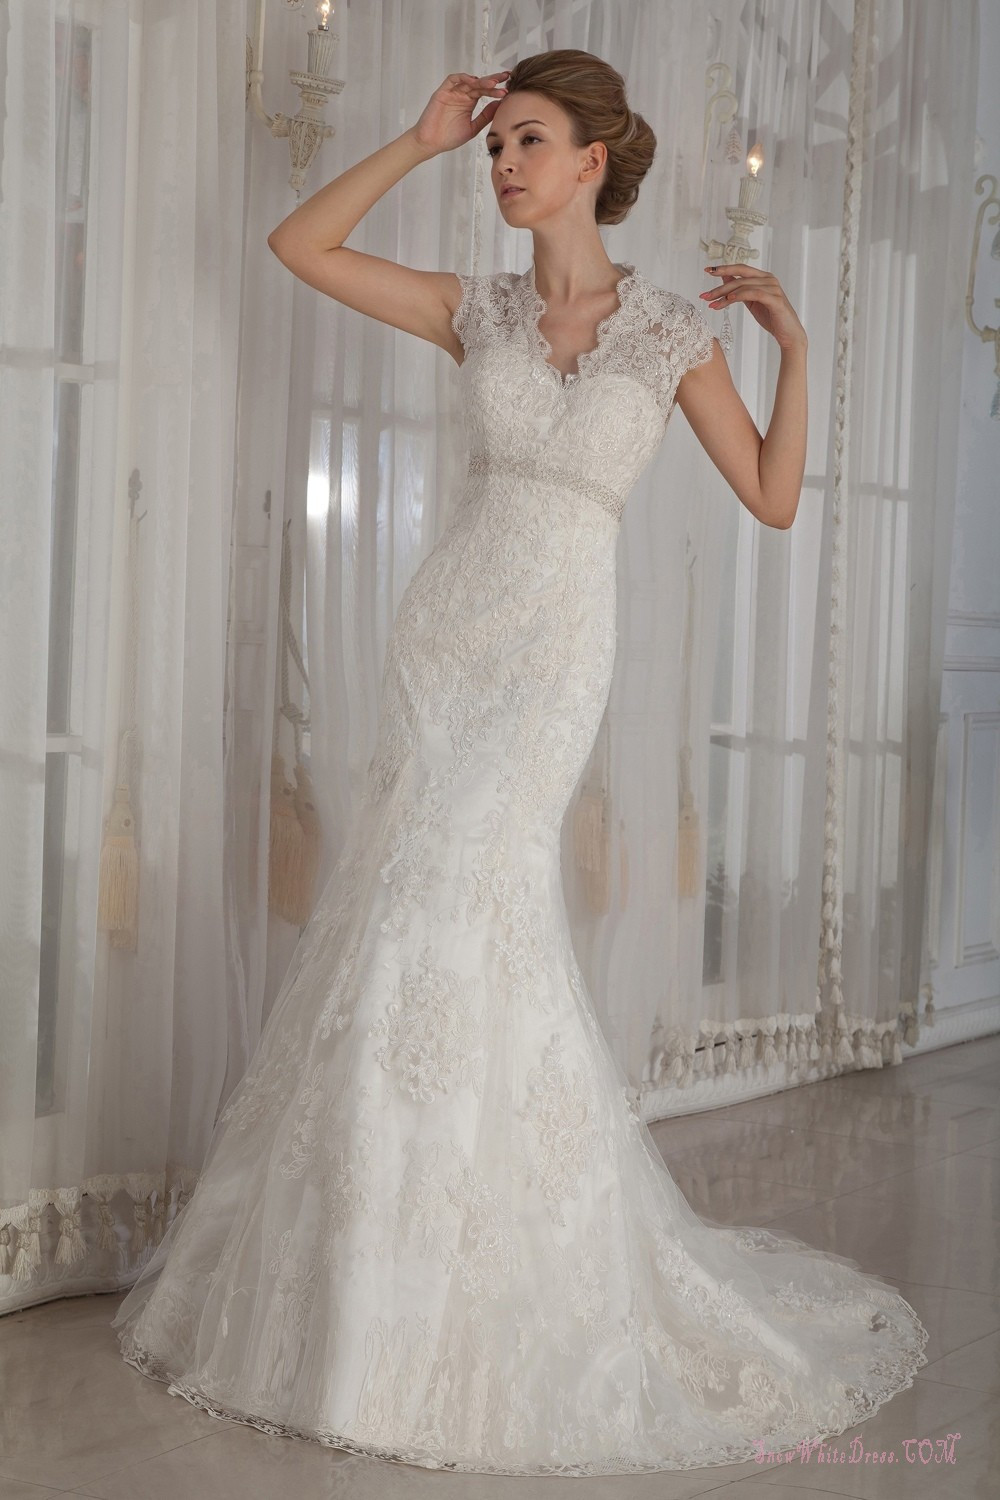 Compare Prices on Spanish Bridal Gowns- Online Shopping/Buy Low ...